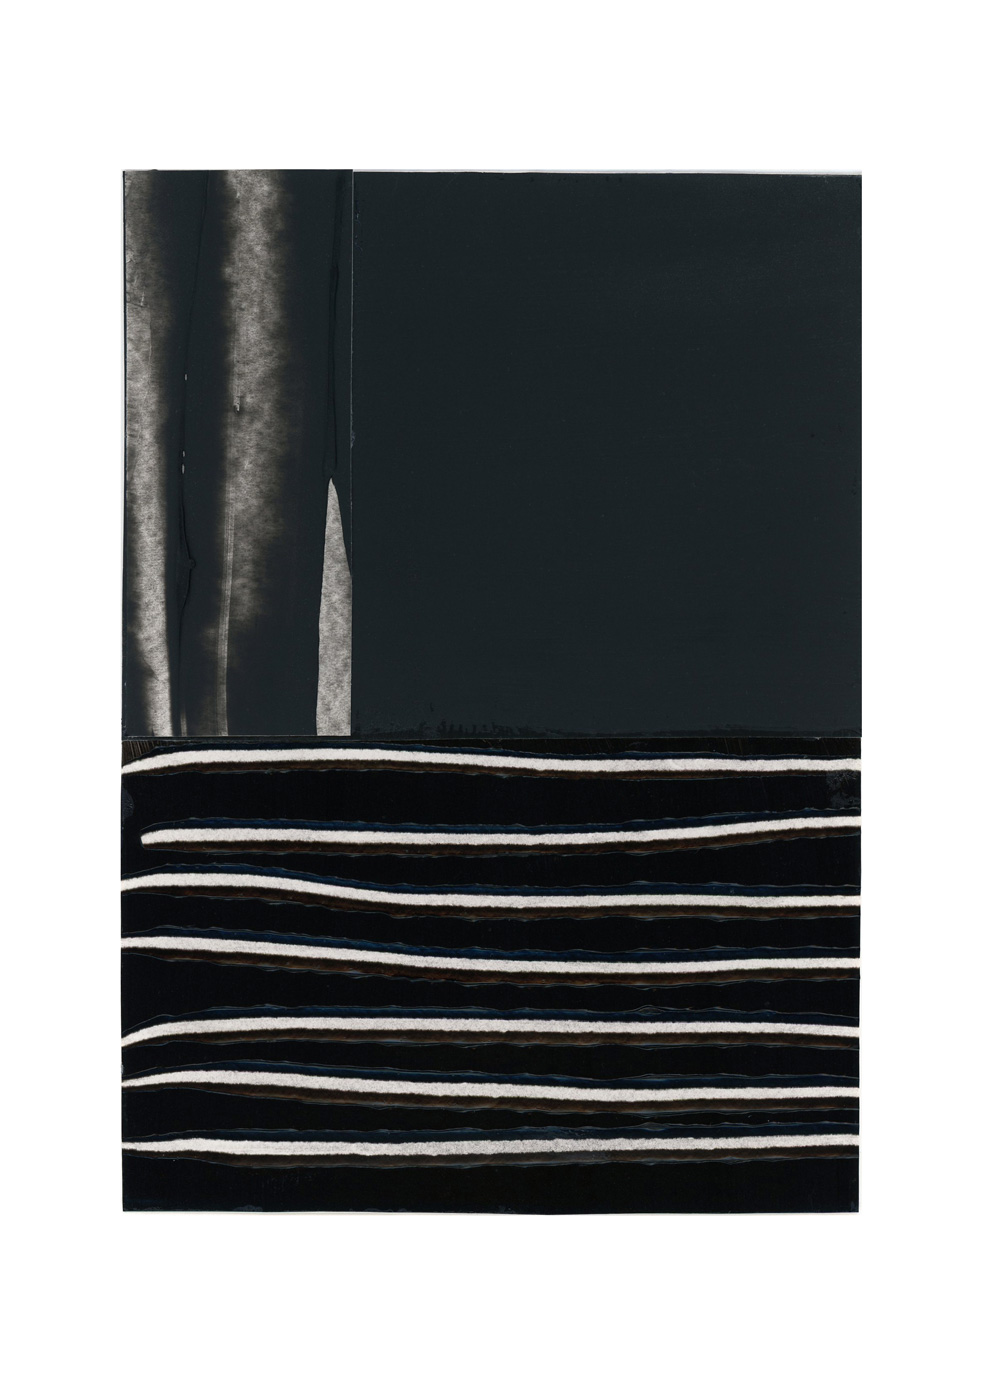 inspired by pierre soulages, no. 6